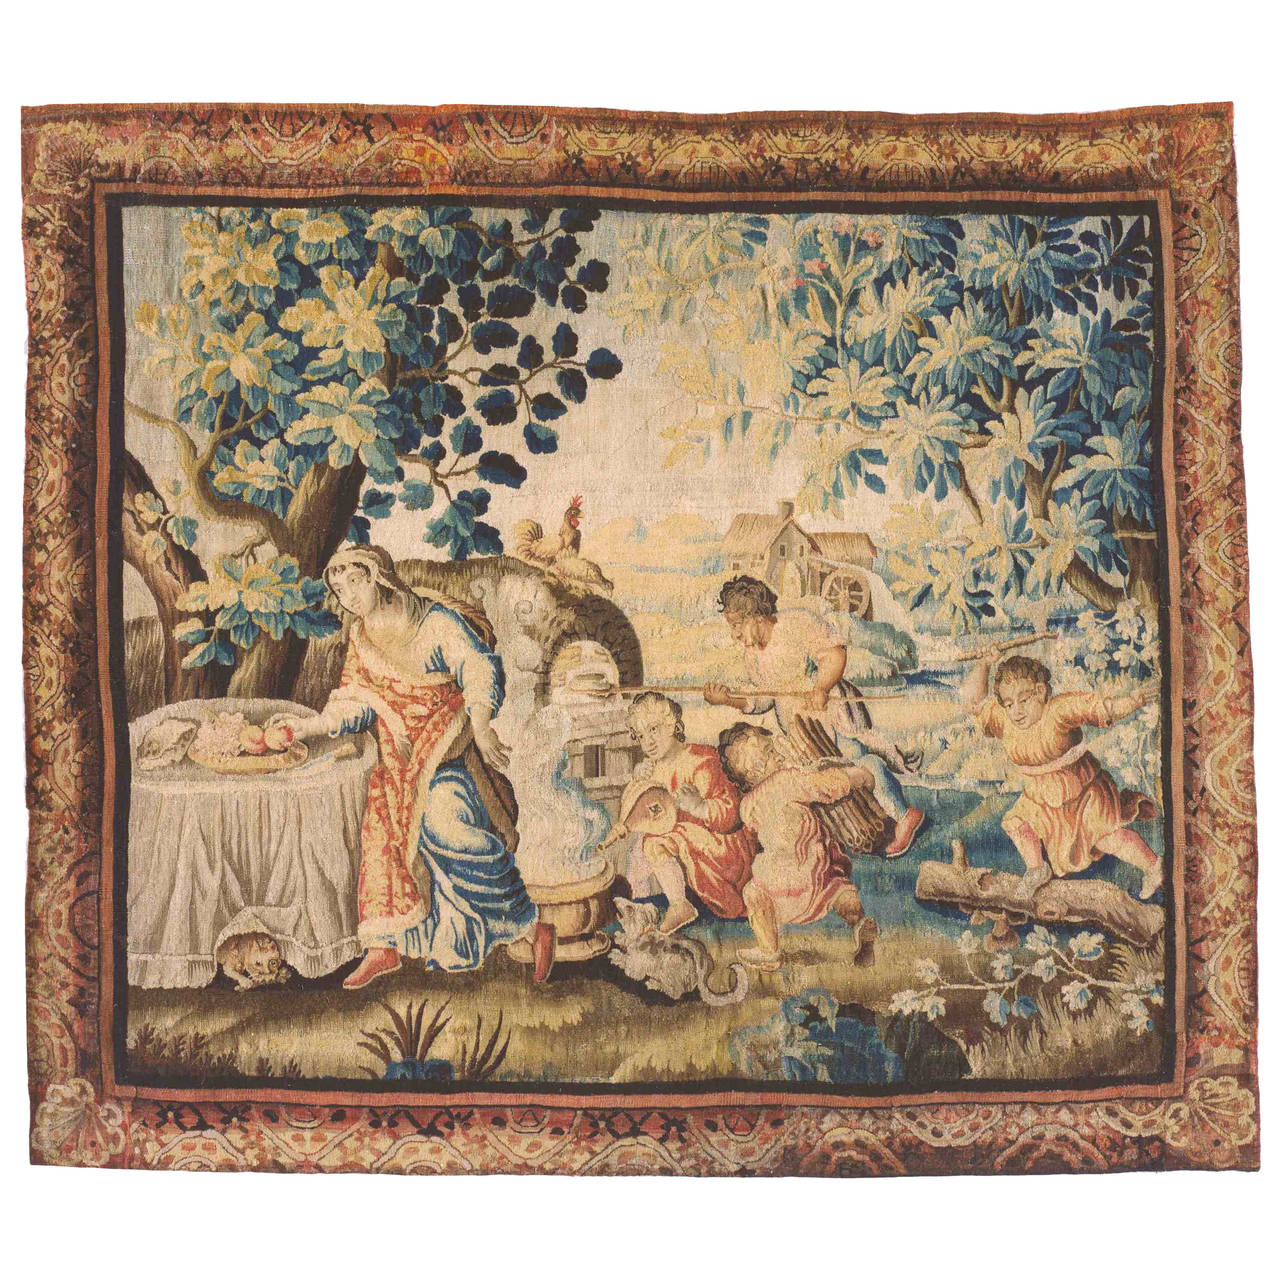 Antique 18th Century French Aubusson Rustic Tapestry of a Family Preparing Lunch